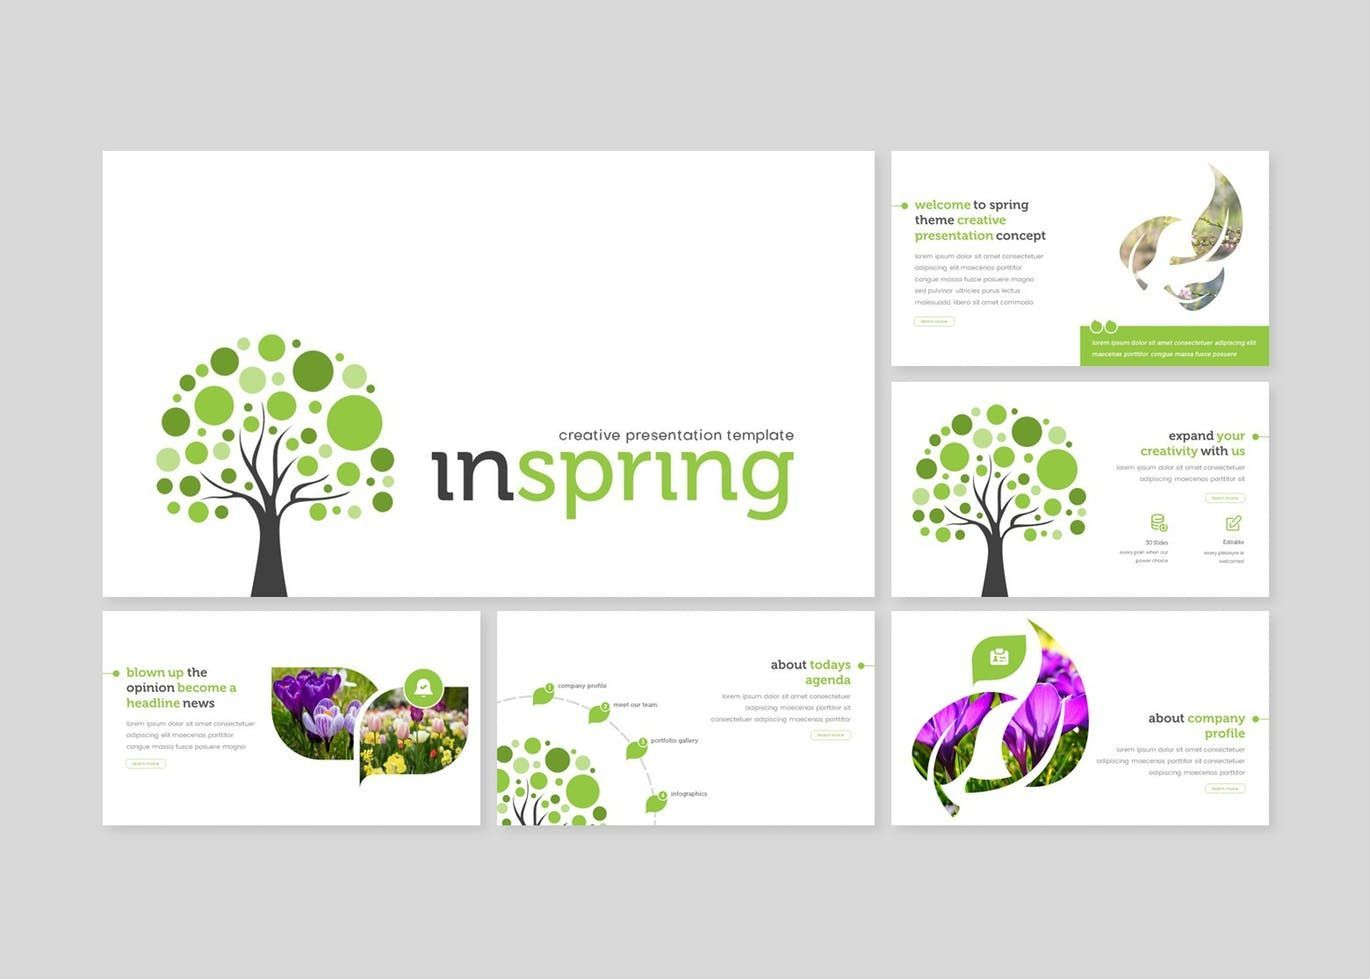 Inspring - Google Slides Template, Slide 2, 07738, Presentation Templates — PoweredTemplate.com